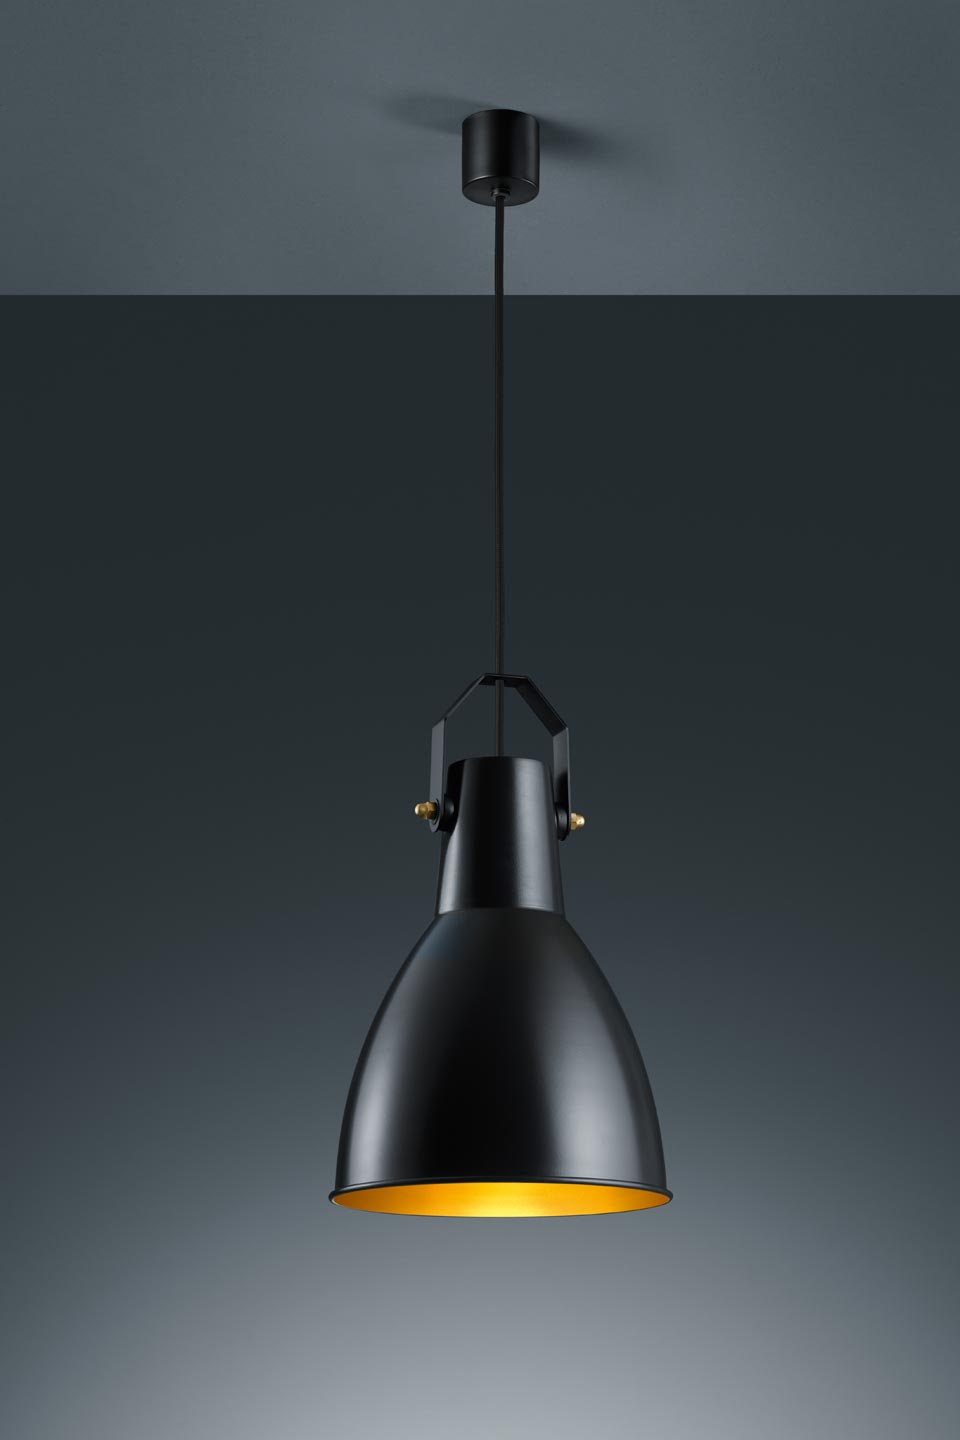 Suspension longue en m tal noir mat style industriel baulmann leuchten lumin - Suspension luminaire style industriel ...